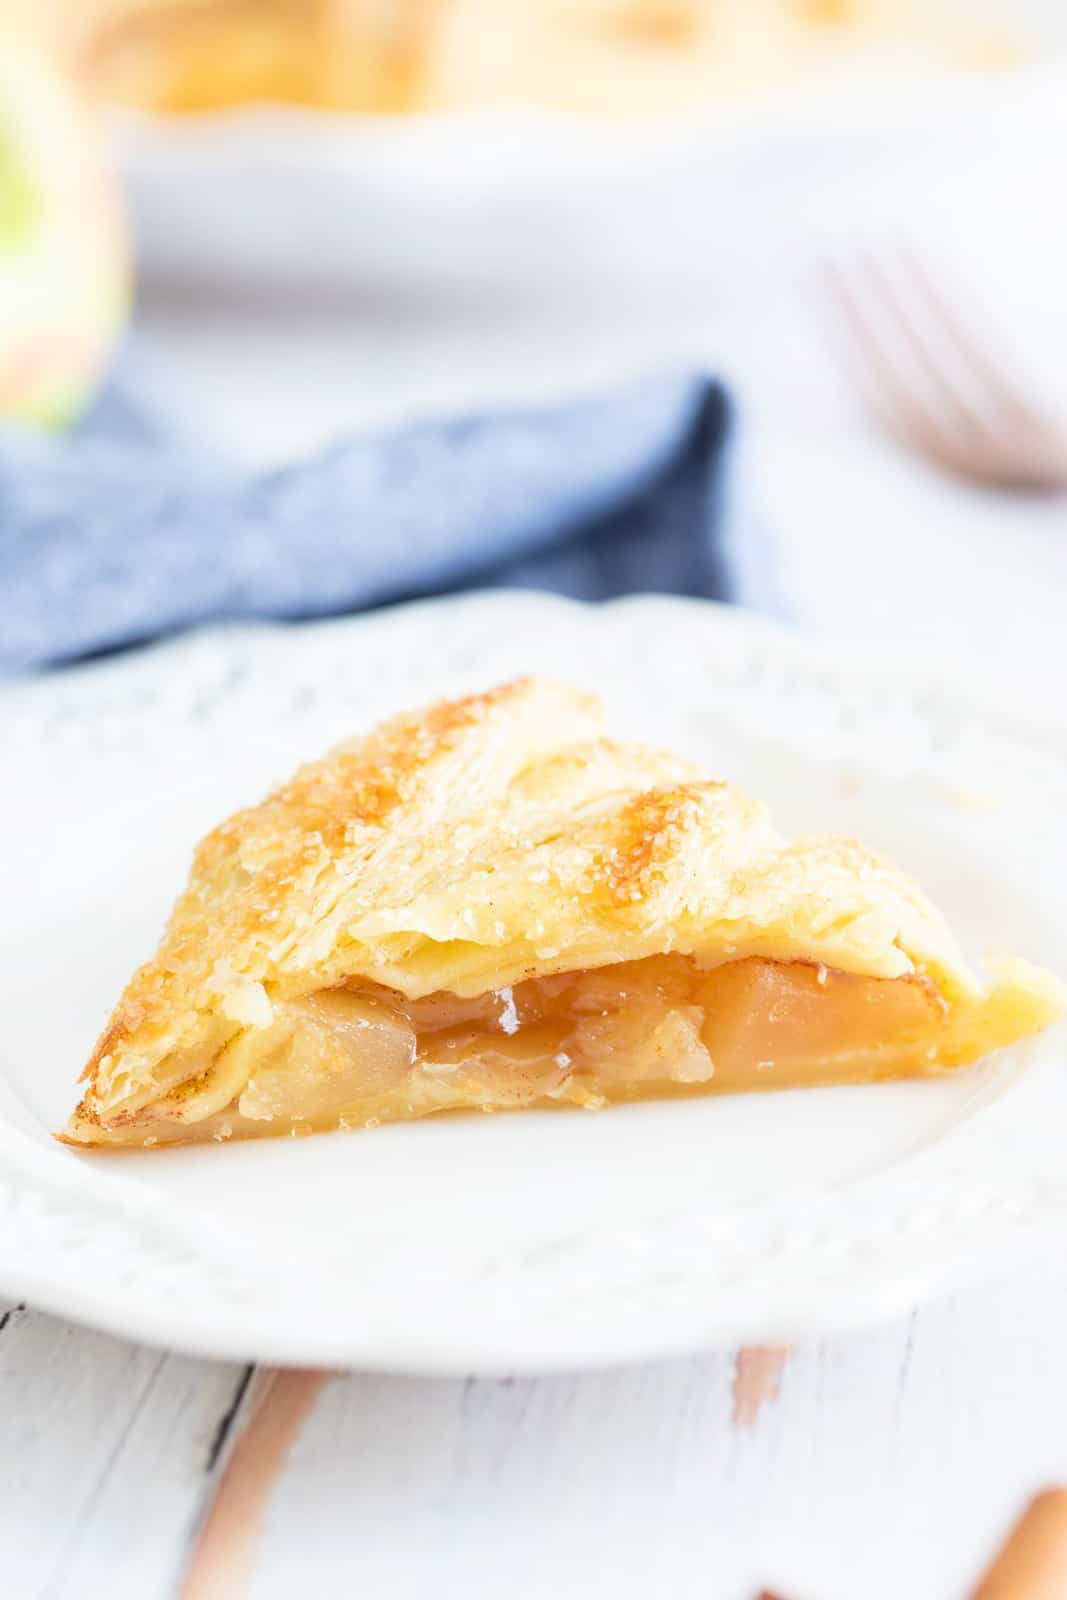 Close up of one slice of Apple Puff Pastry on plate